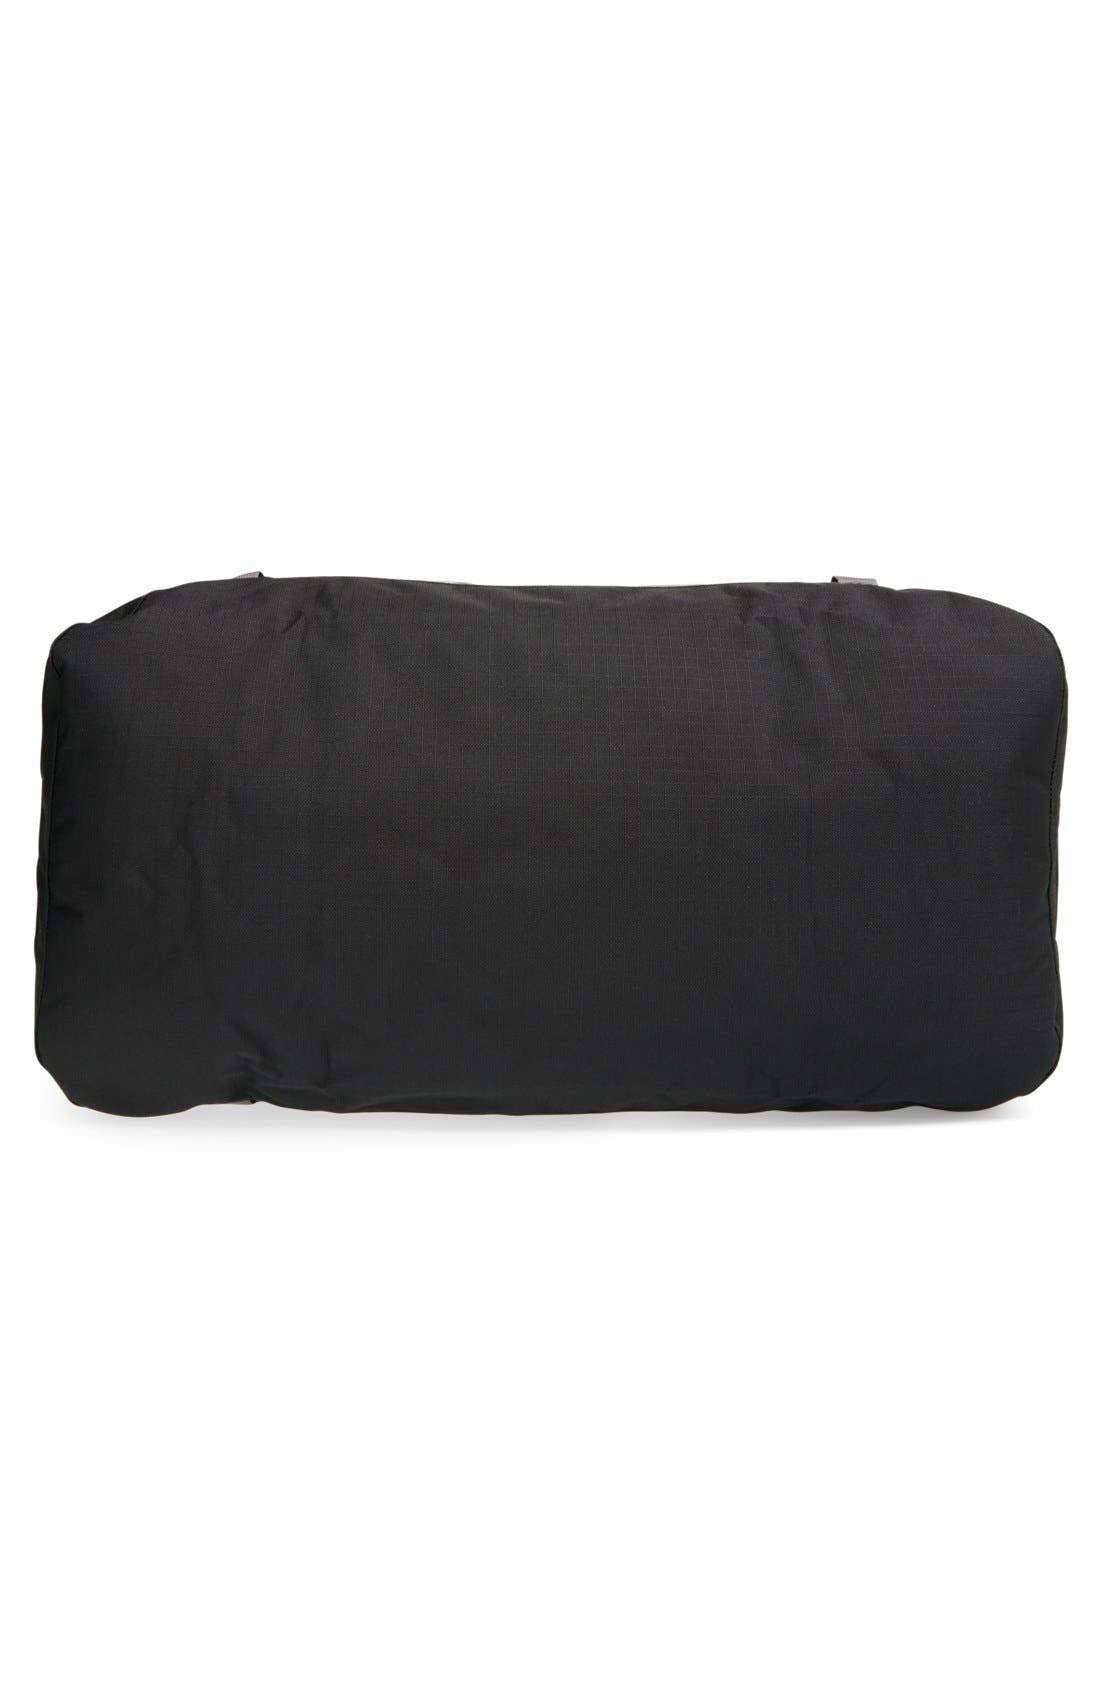 PATAGONIA,                             'Black Hole<sup>™</sup>' Duffel Bag,                             Alternate thumbnail 2, color,                             001